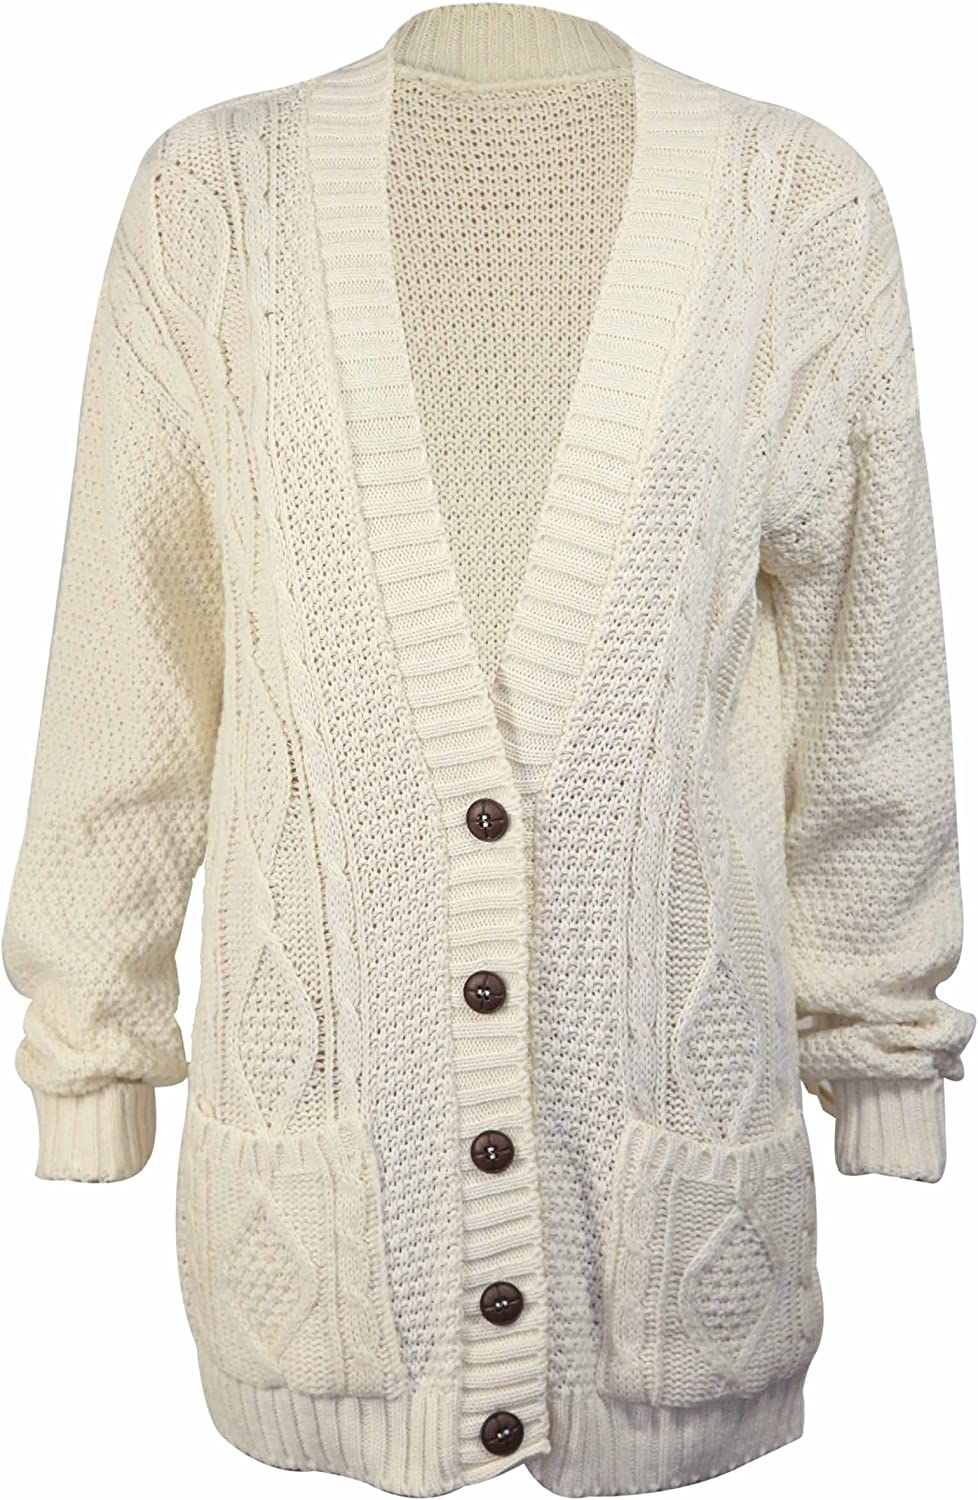 Women's Long Sleeve Cable Knit Chunky Cardigan